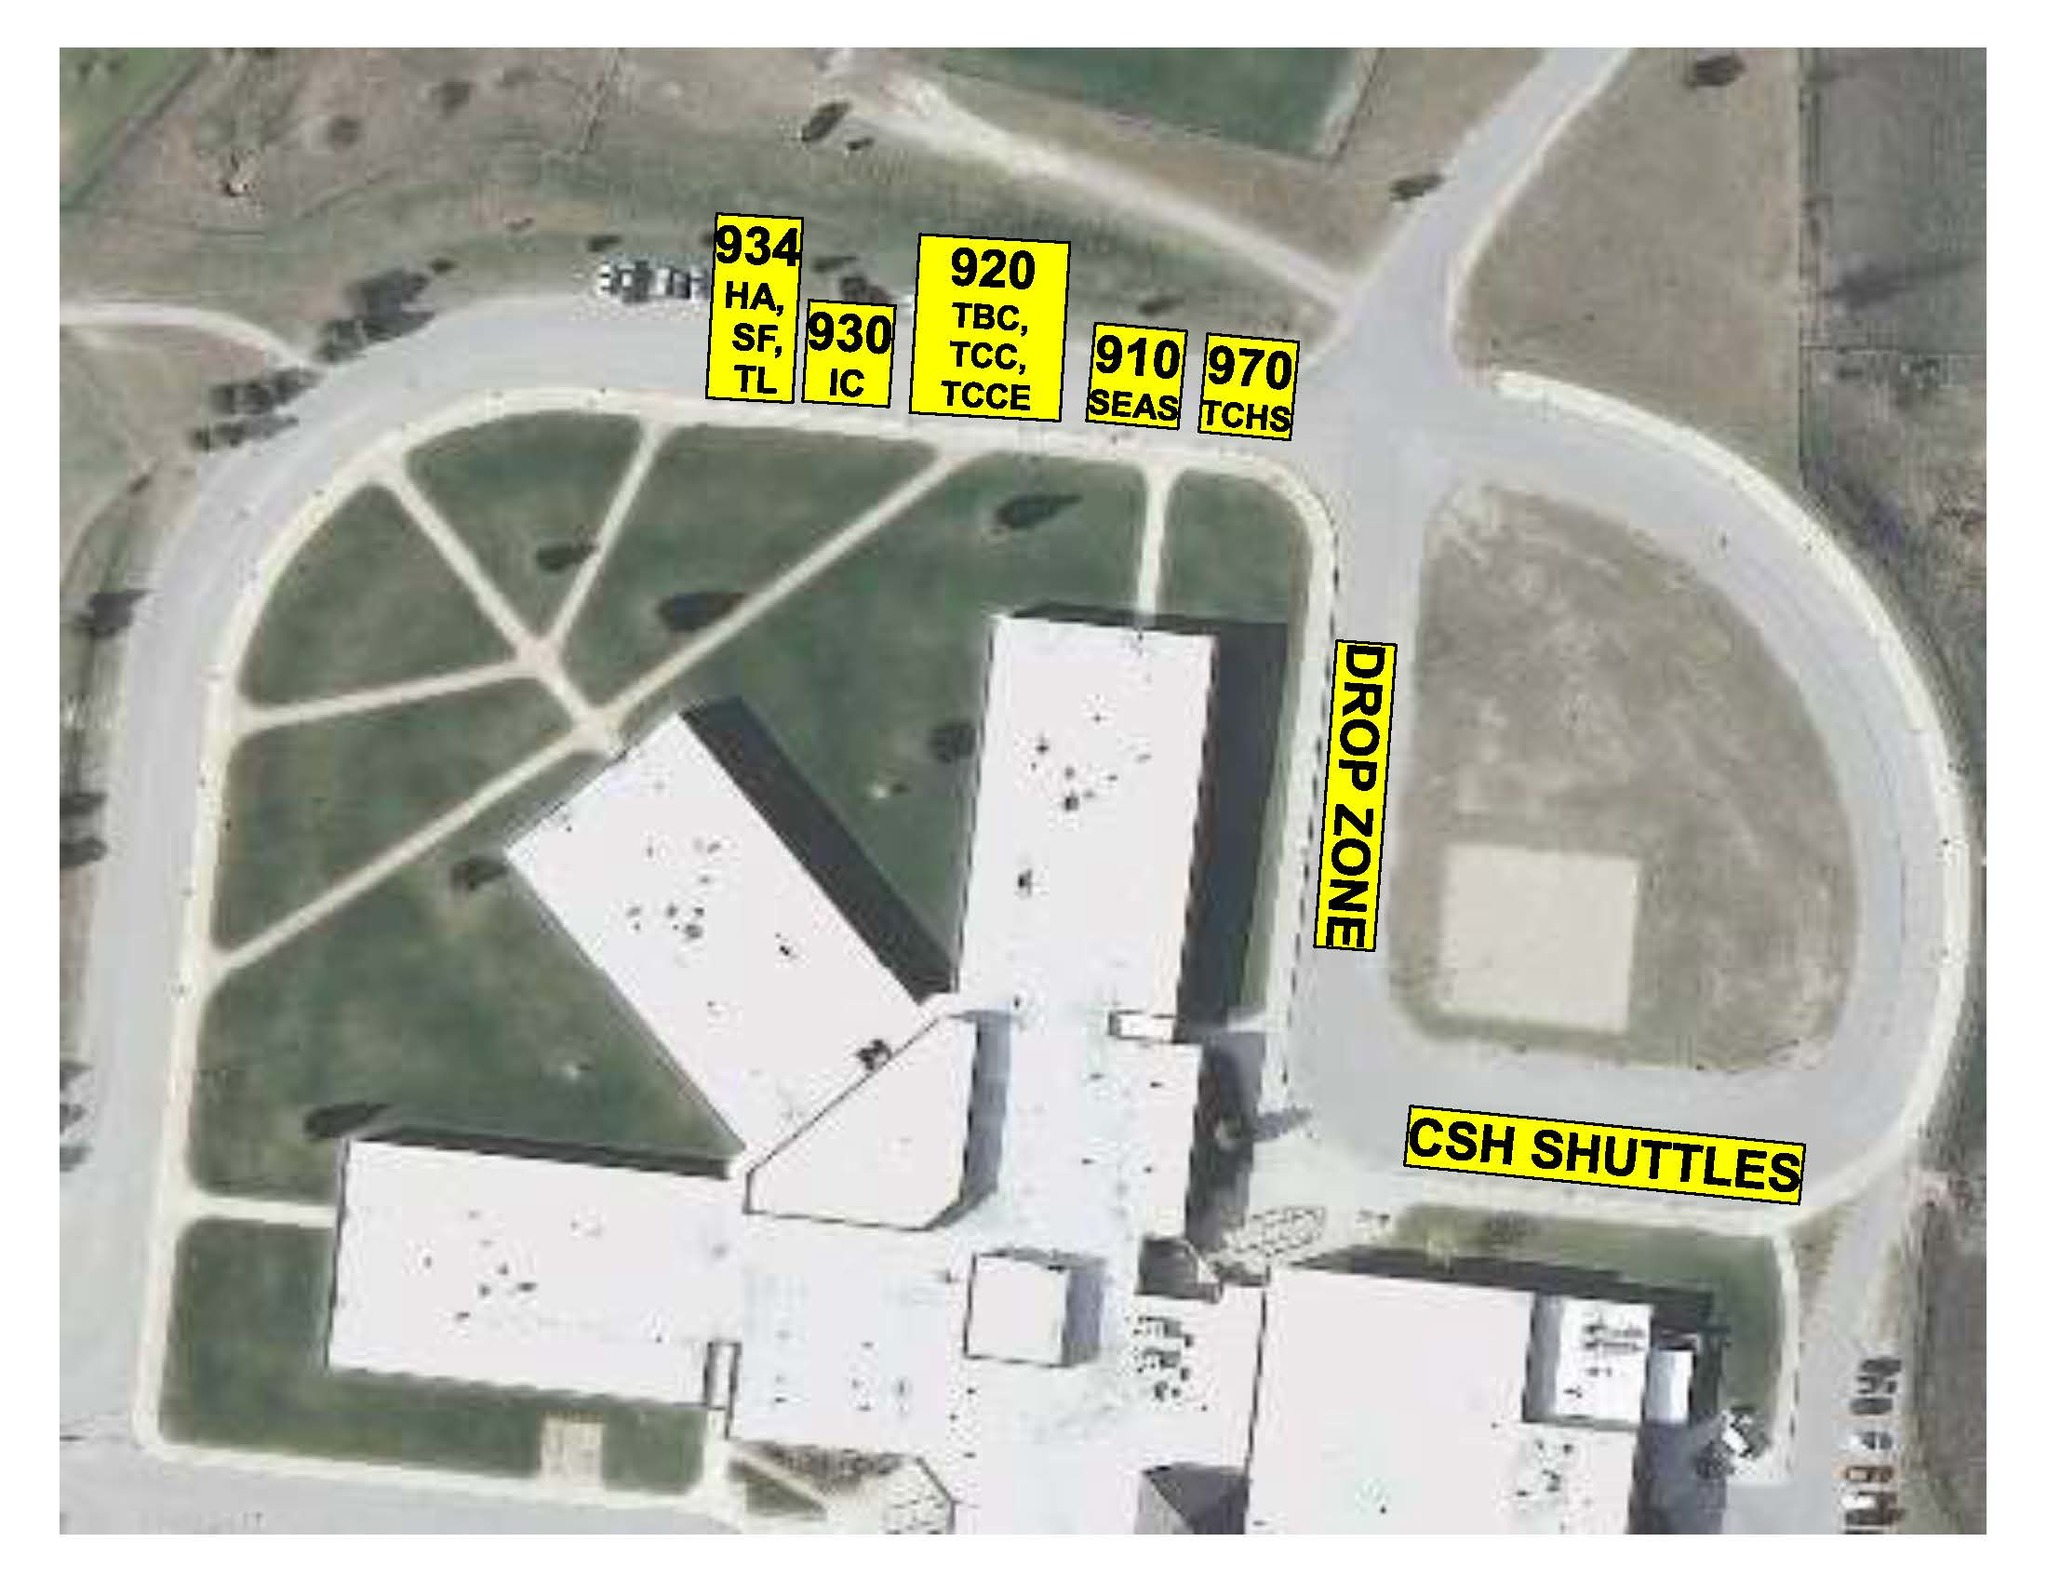 EMS morning bus ramp map